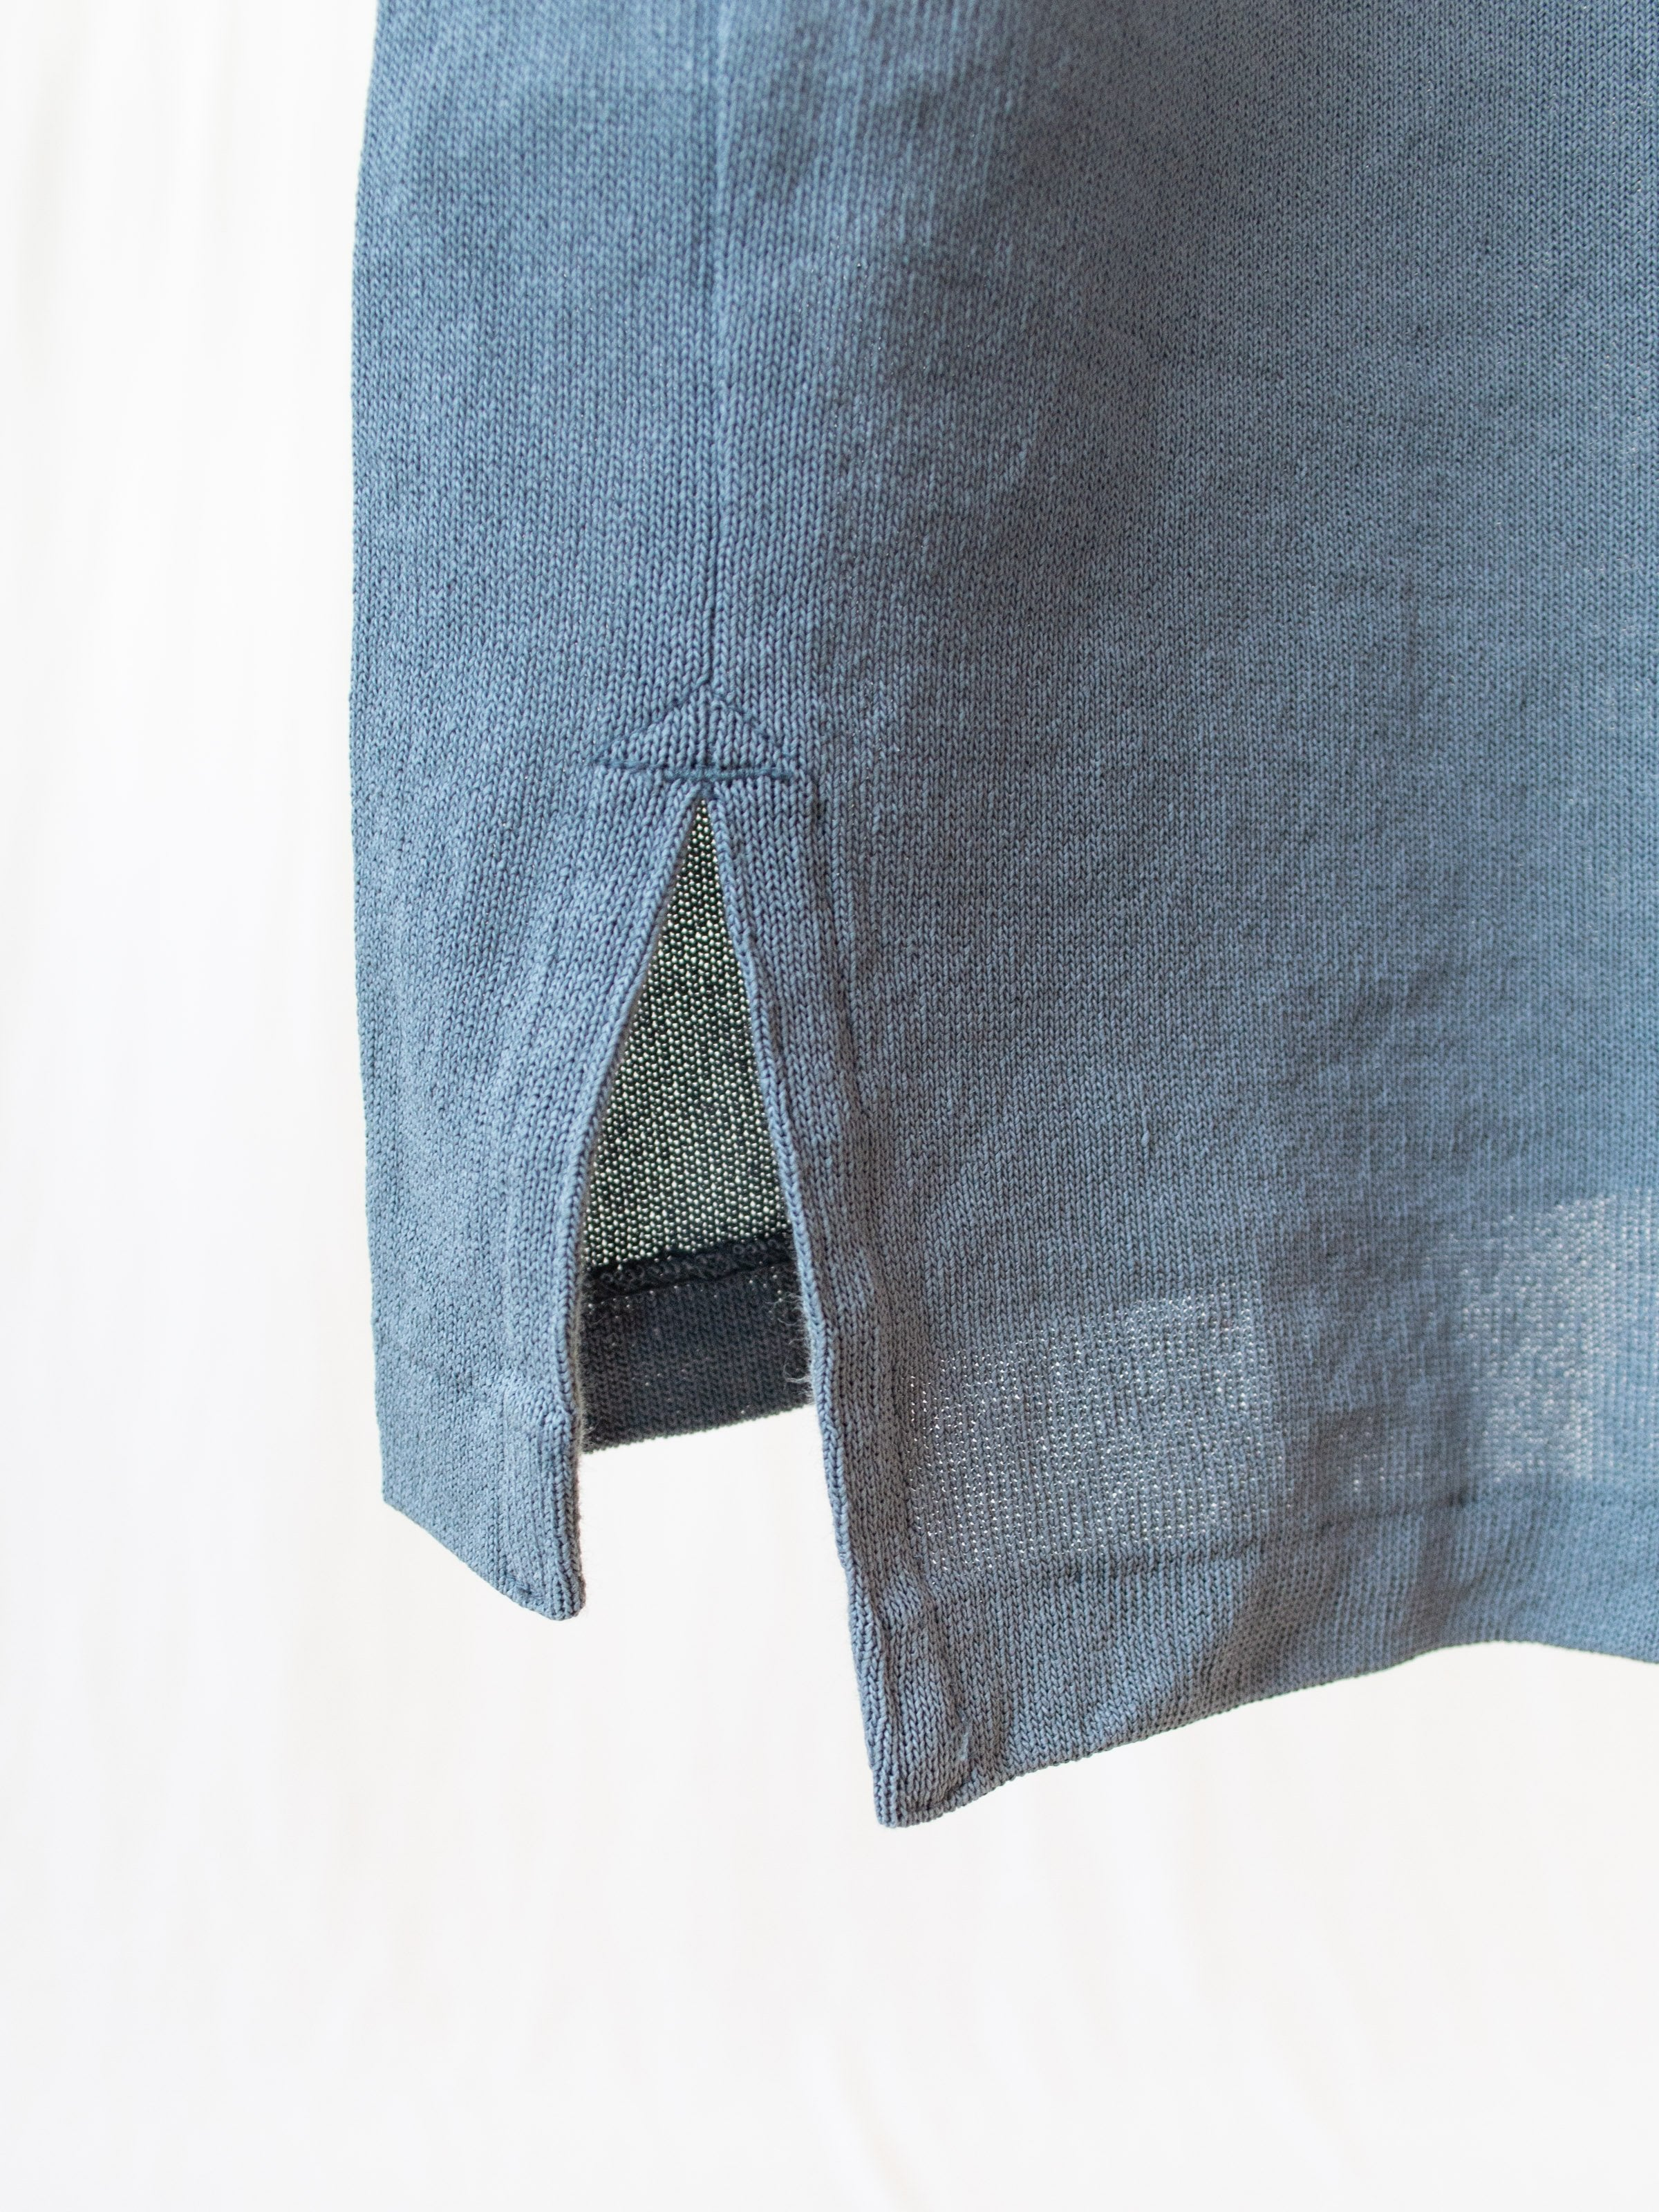 Namu Shop - Kaptain Sunshine Paper Loop Skipper Shirt - Blue Gray